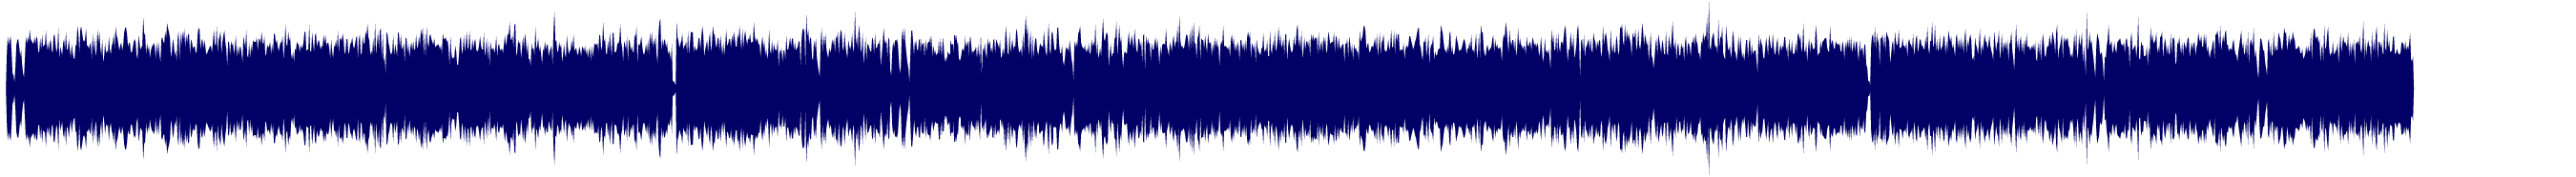 waveform of track #70162